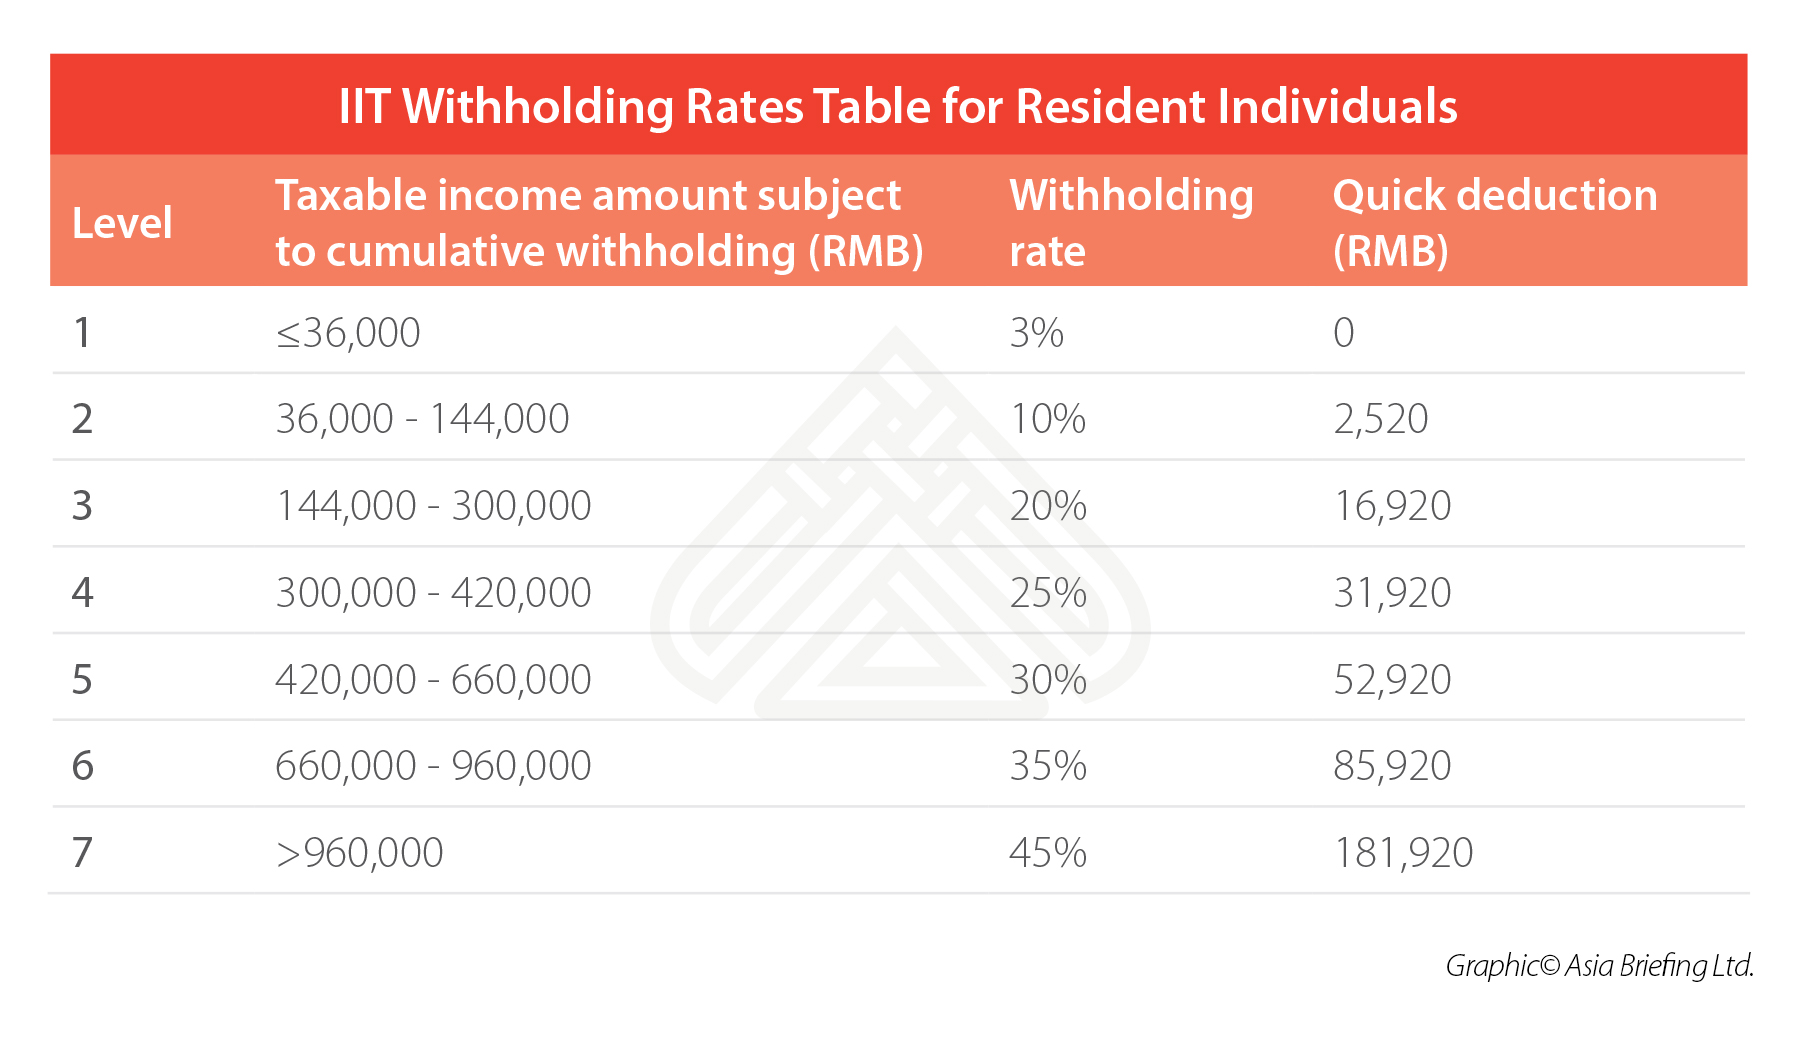 CHINA-IIT-WITHHOLDING-RATES-RESIDENT-INDIVIDUALS